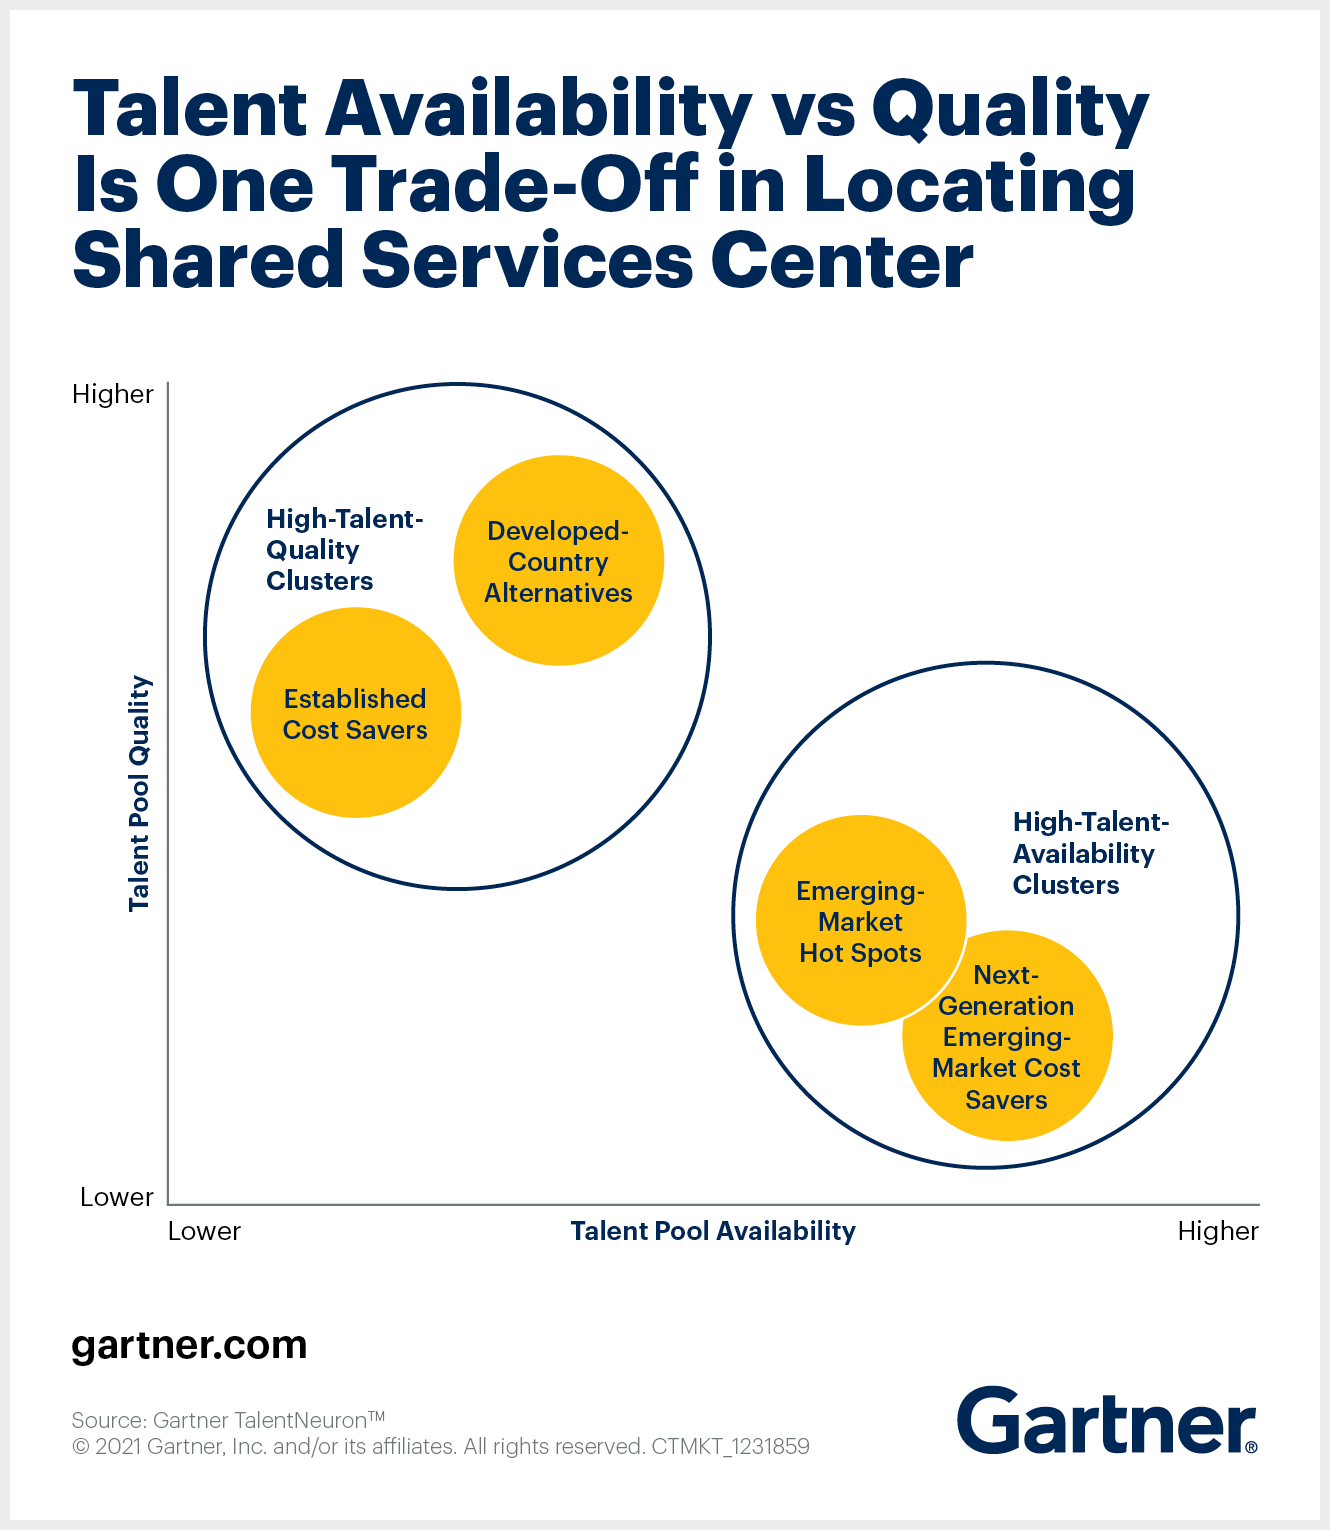 Shared Services Center Location Talent Availability vs Quality